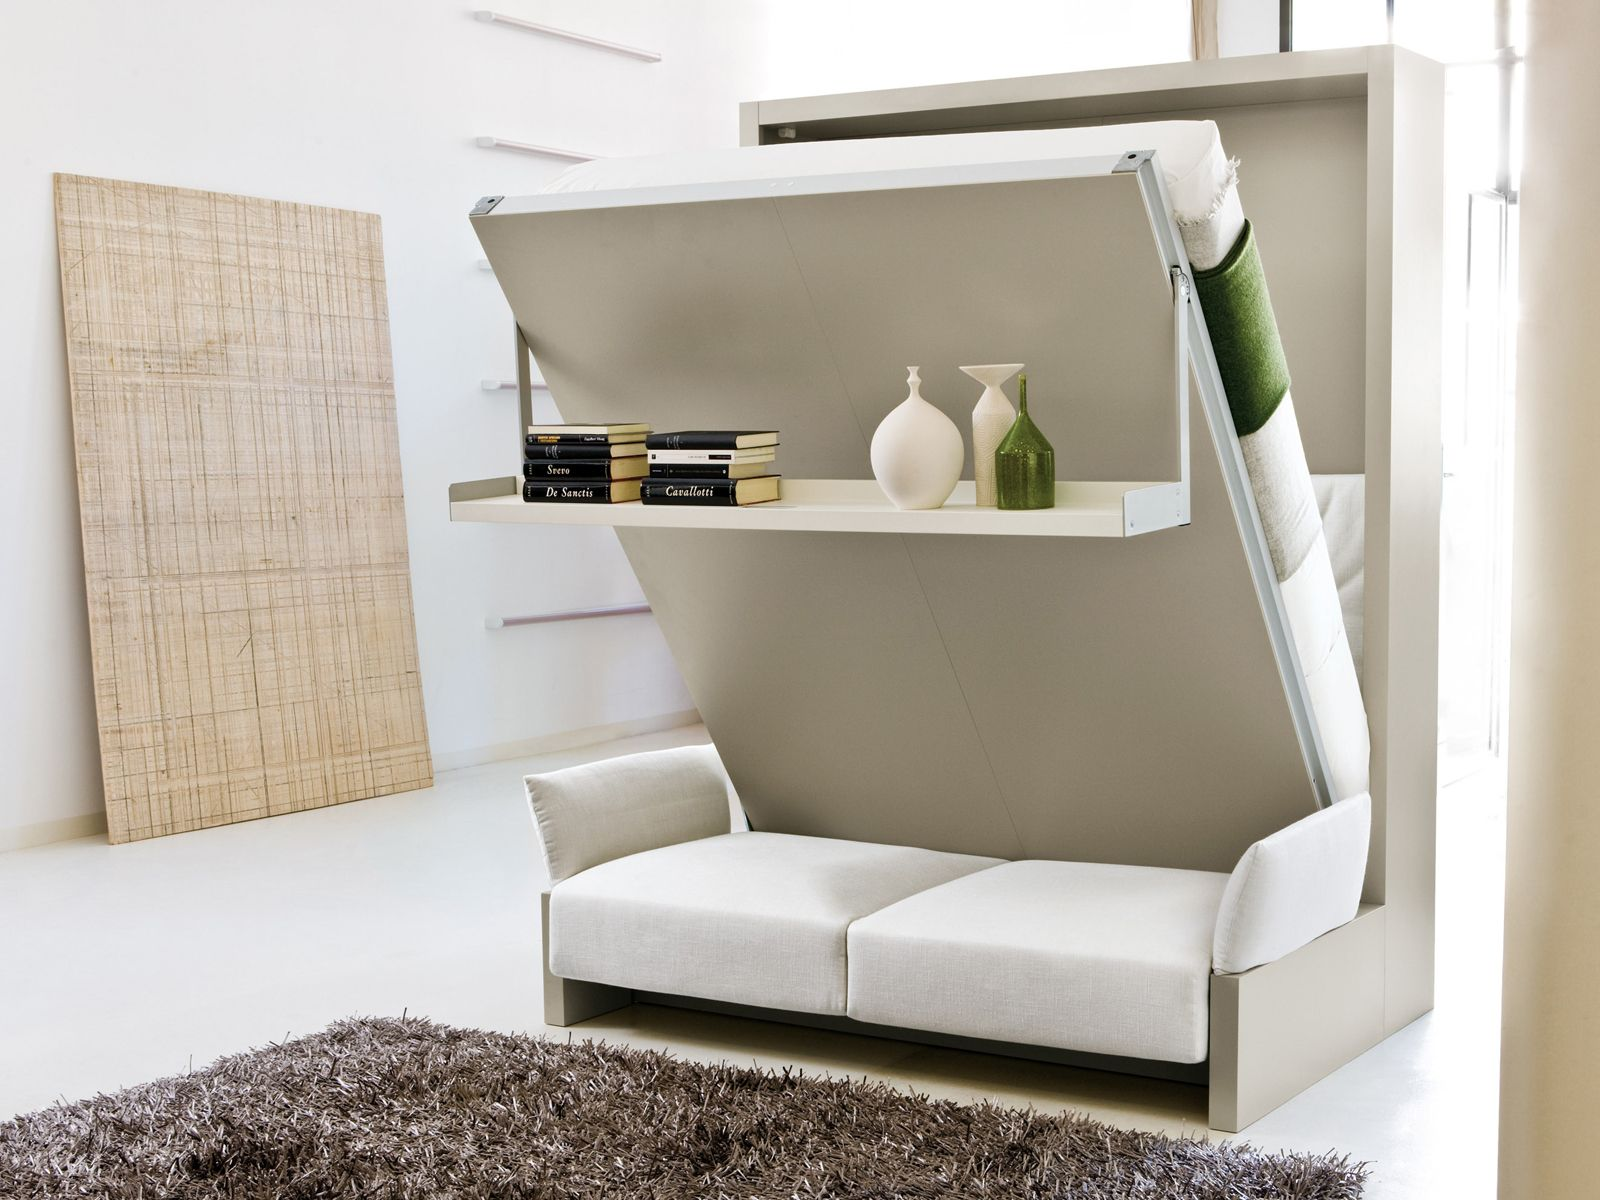 Pull out bed from wall - Storage Wall With Fold Away Bed Nuovoliol 10 Nuovoliol Collection By Clei Design Pierluigi